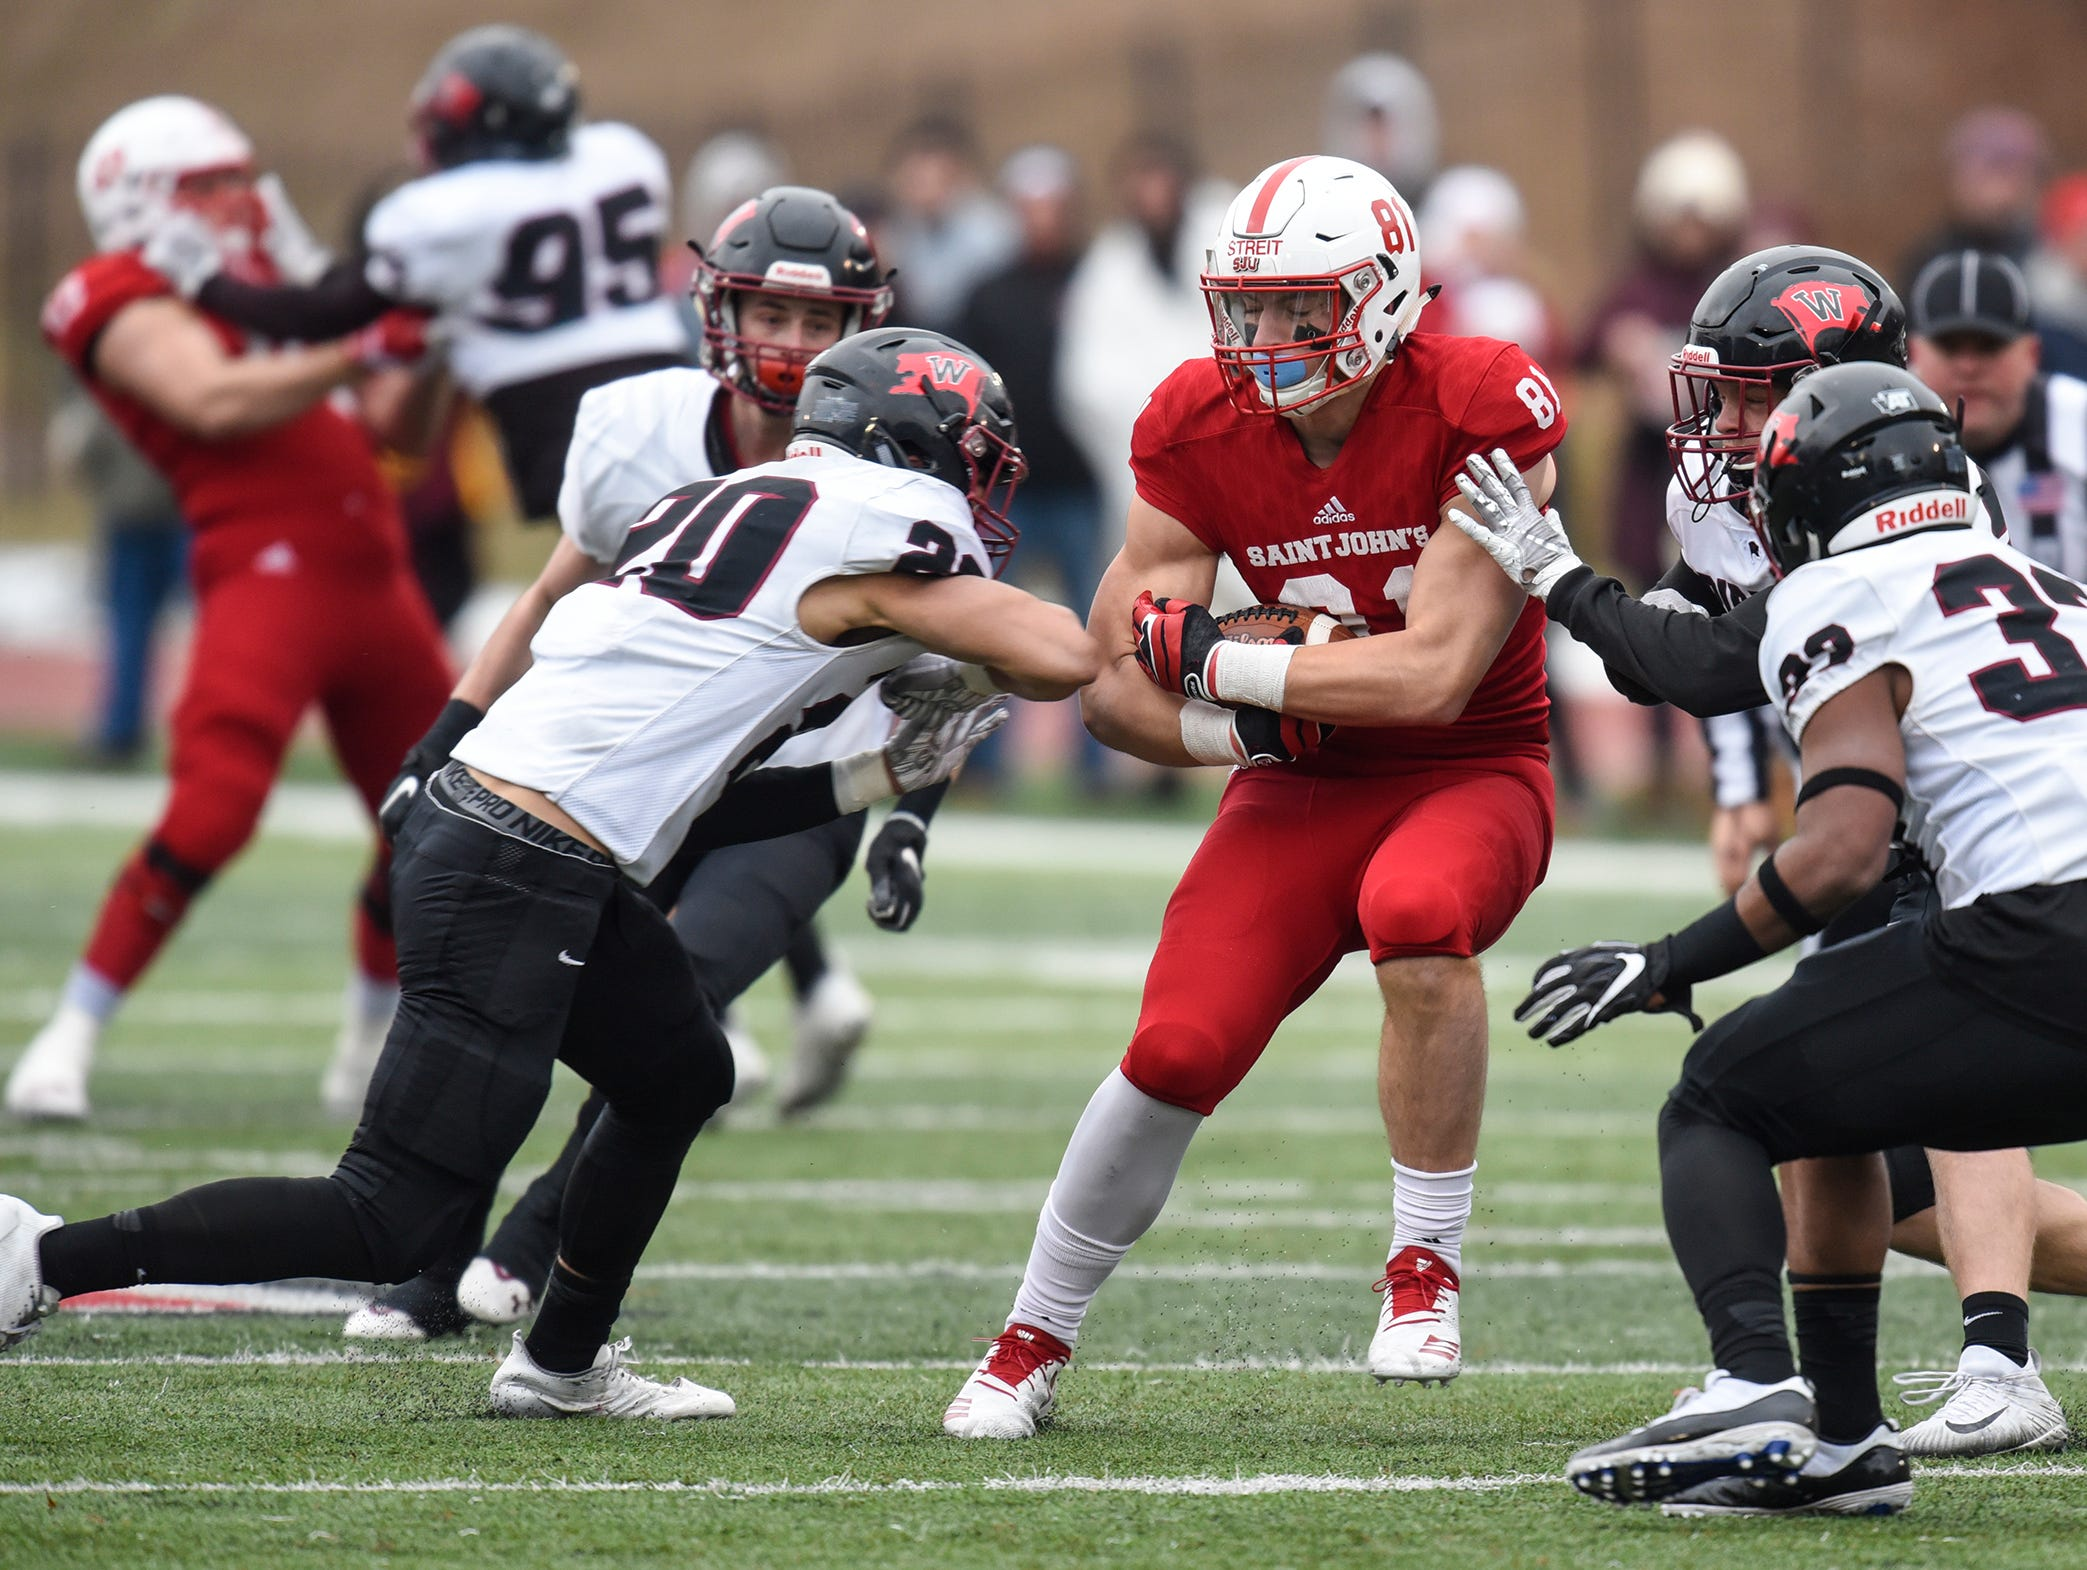 Jared Streit of St. John's rushes after catching a pass during the Saturday, Nov. 24, game against Whitworth at Clemens Stadium in Collegeville.